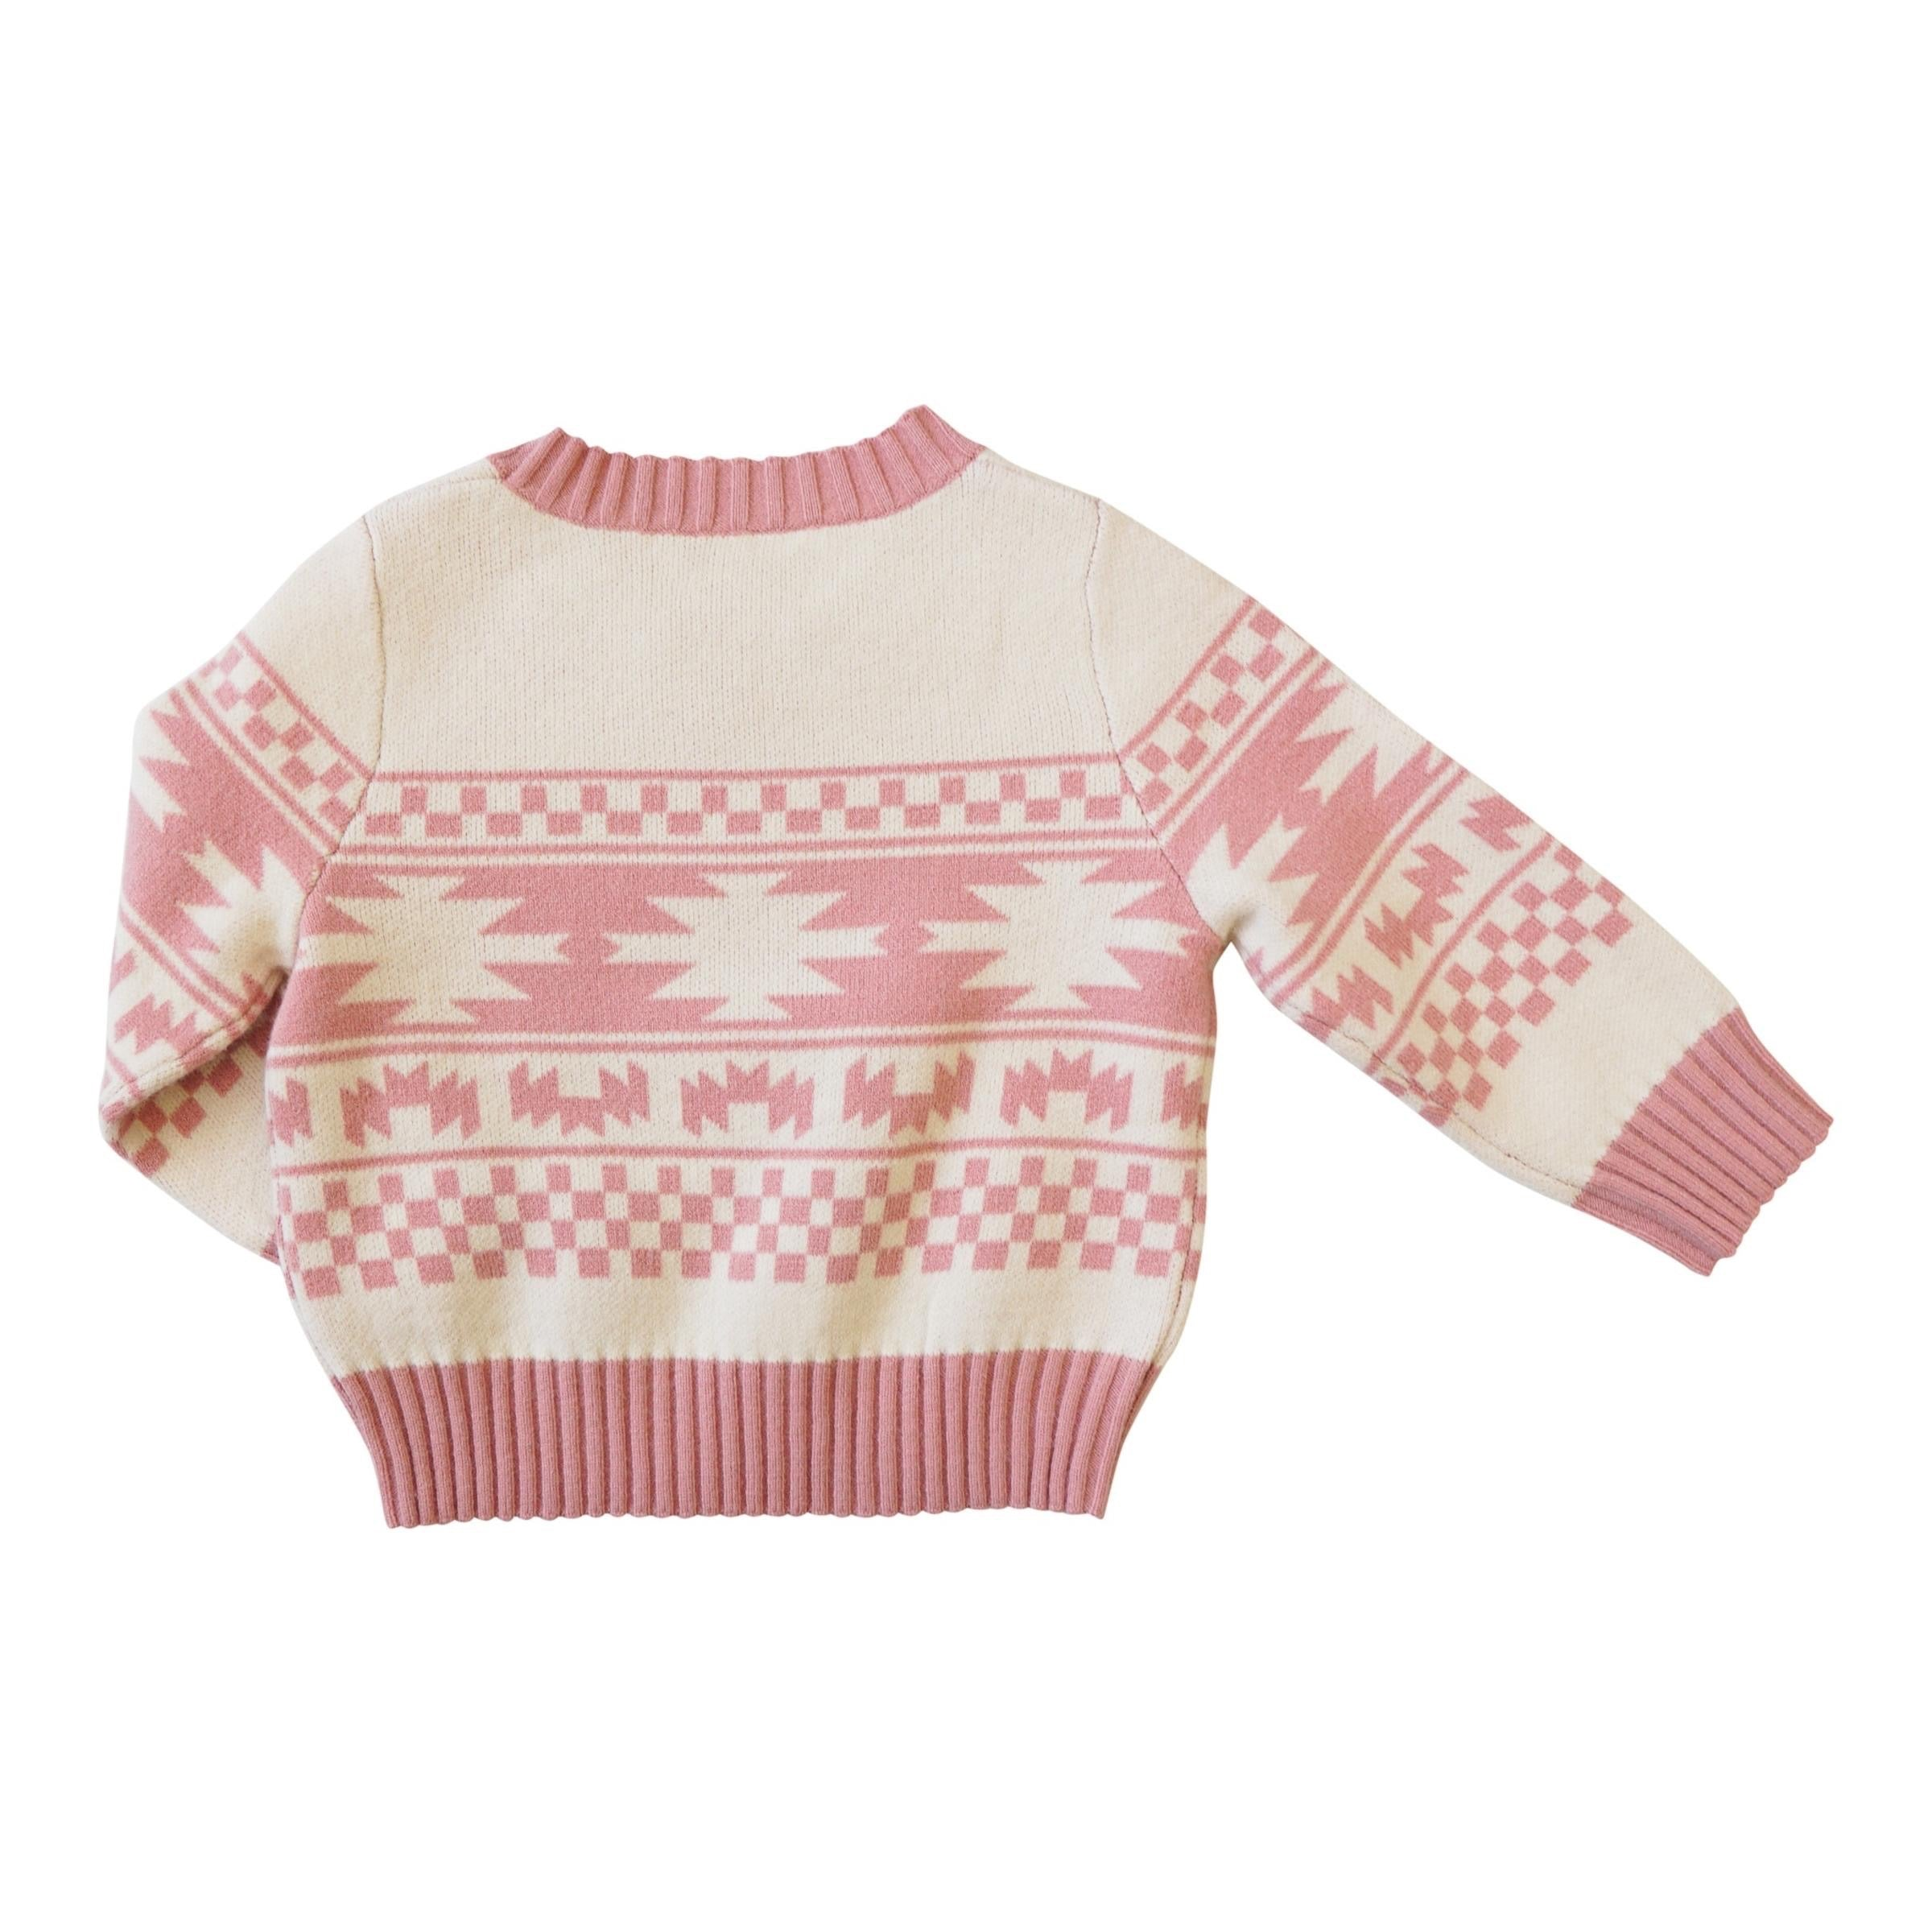 June Girls Sweater